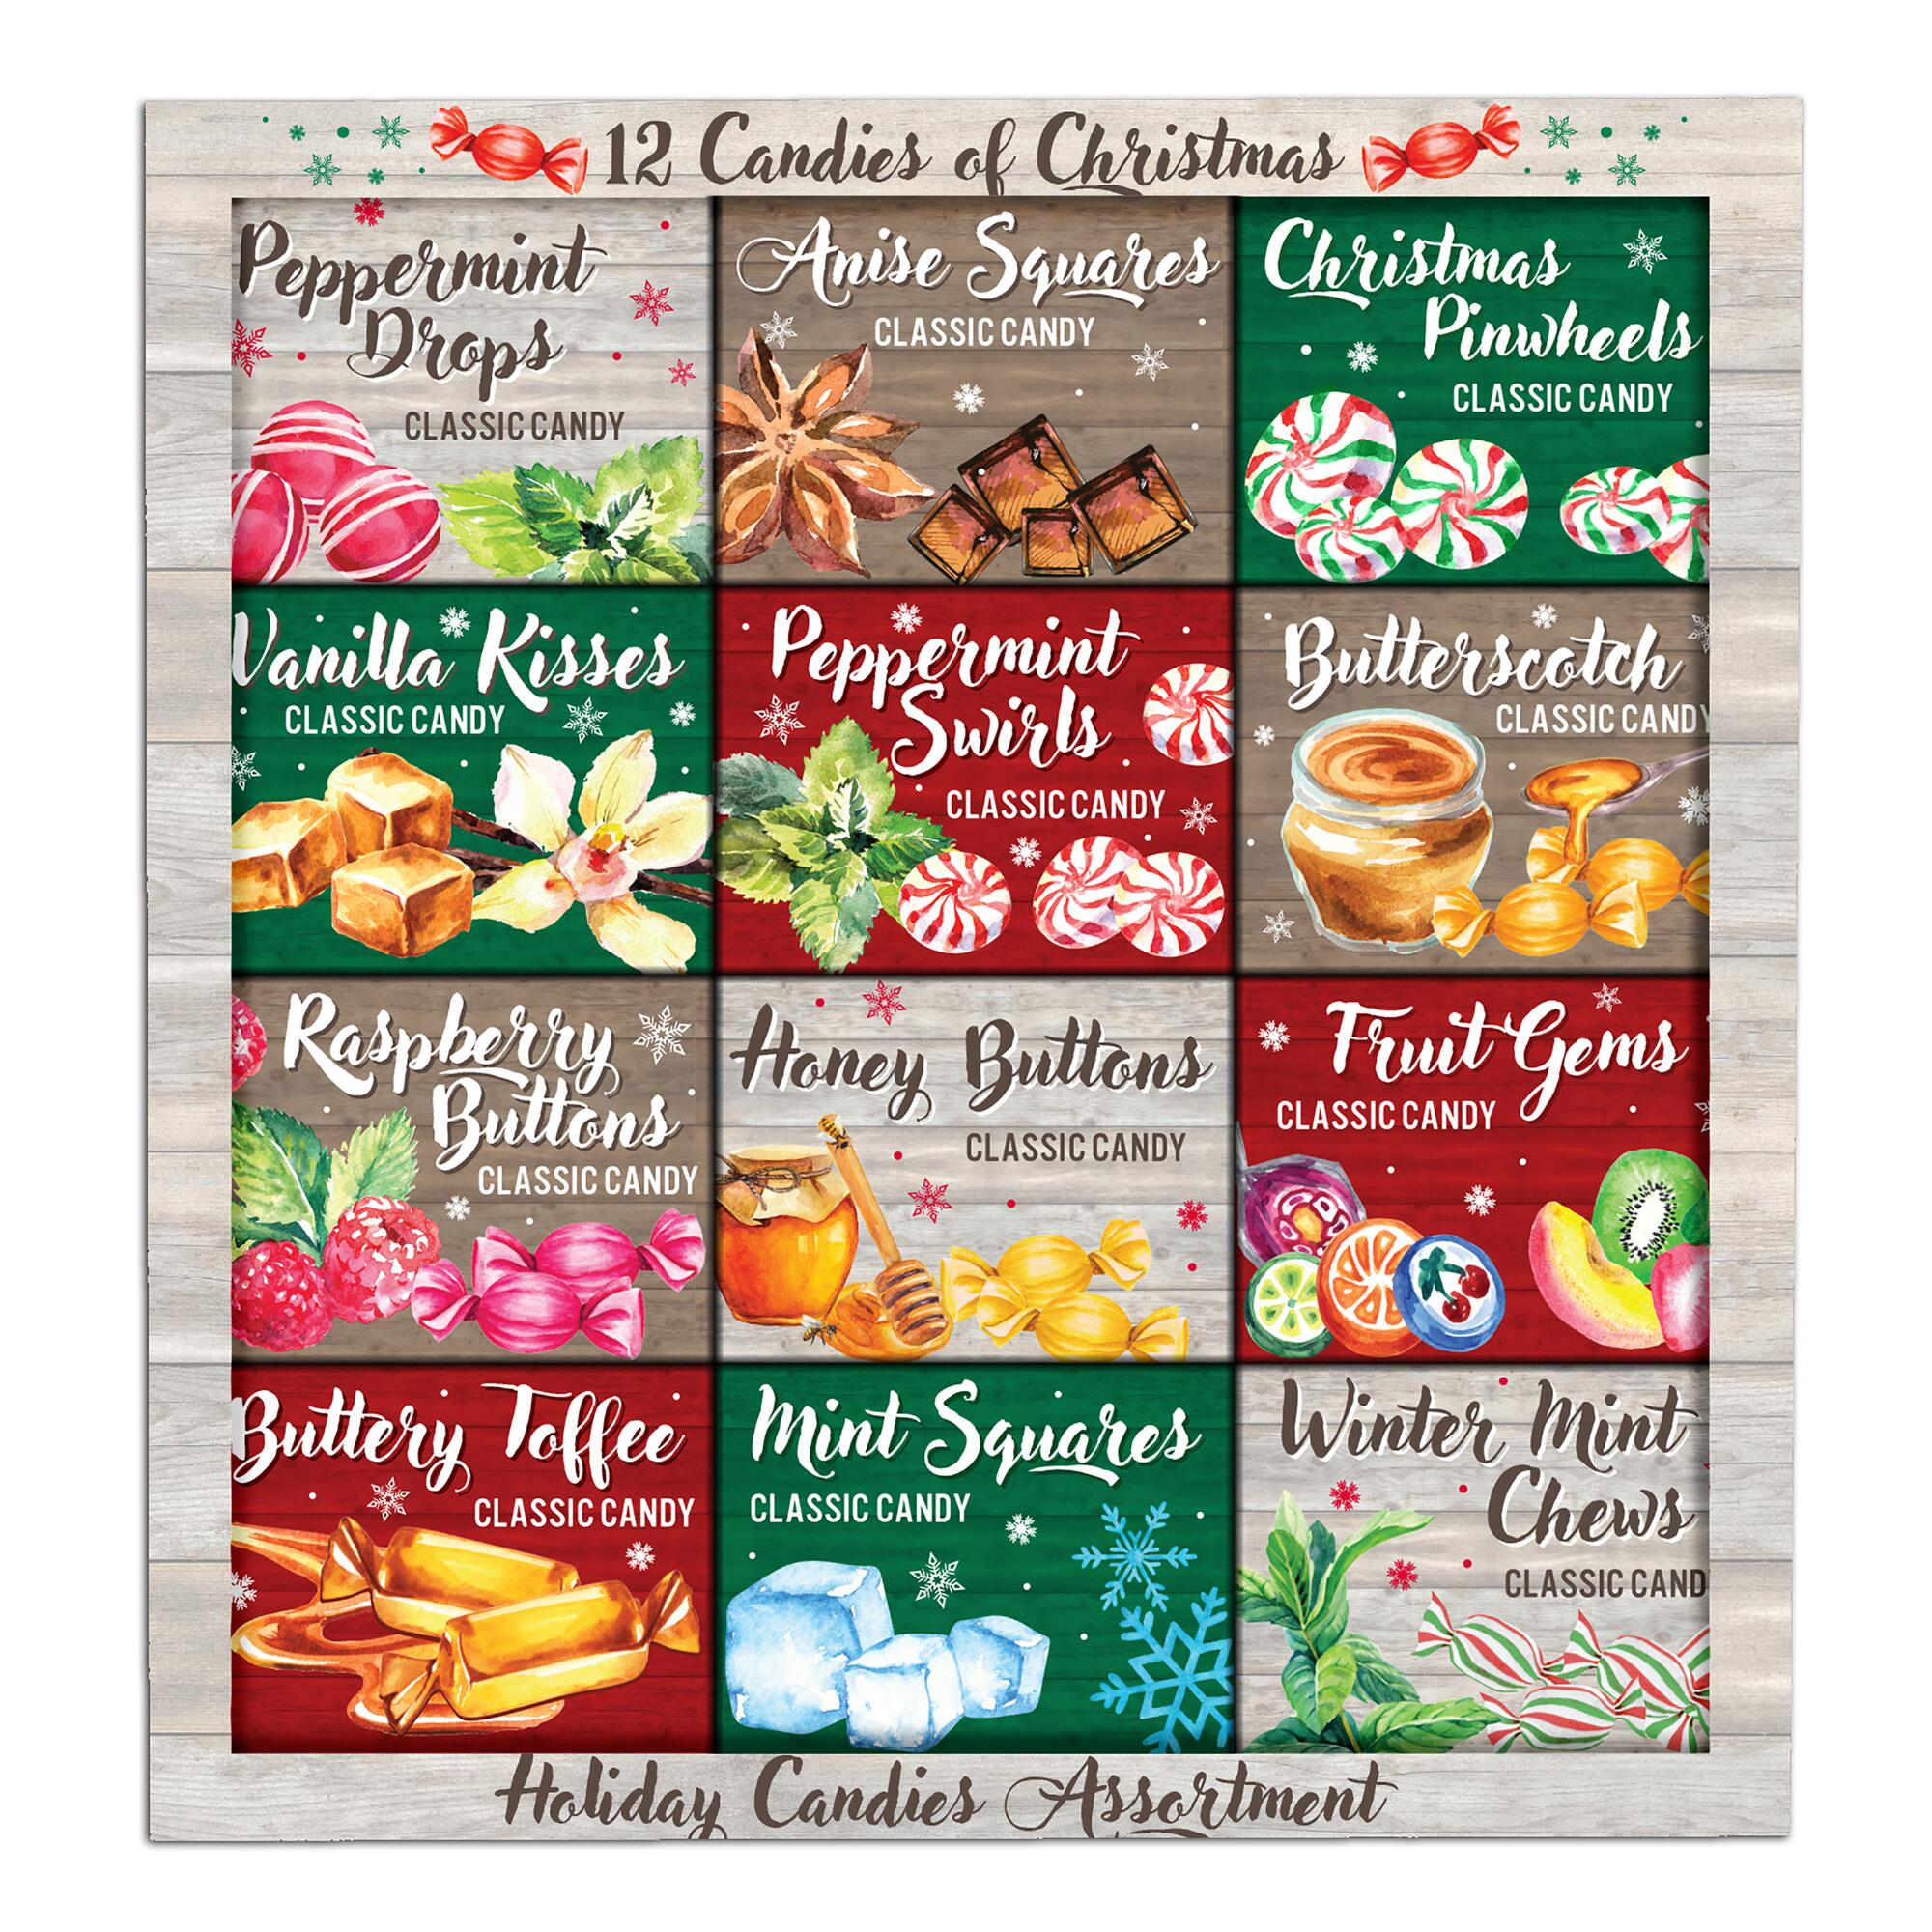 12 Candies of Christmas Holiday Candy Assortment by World Market